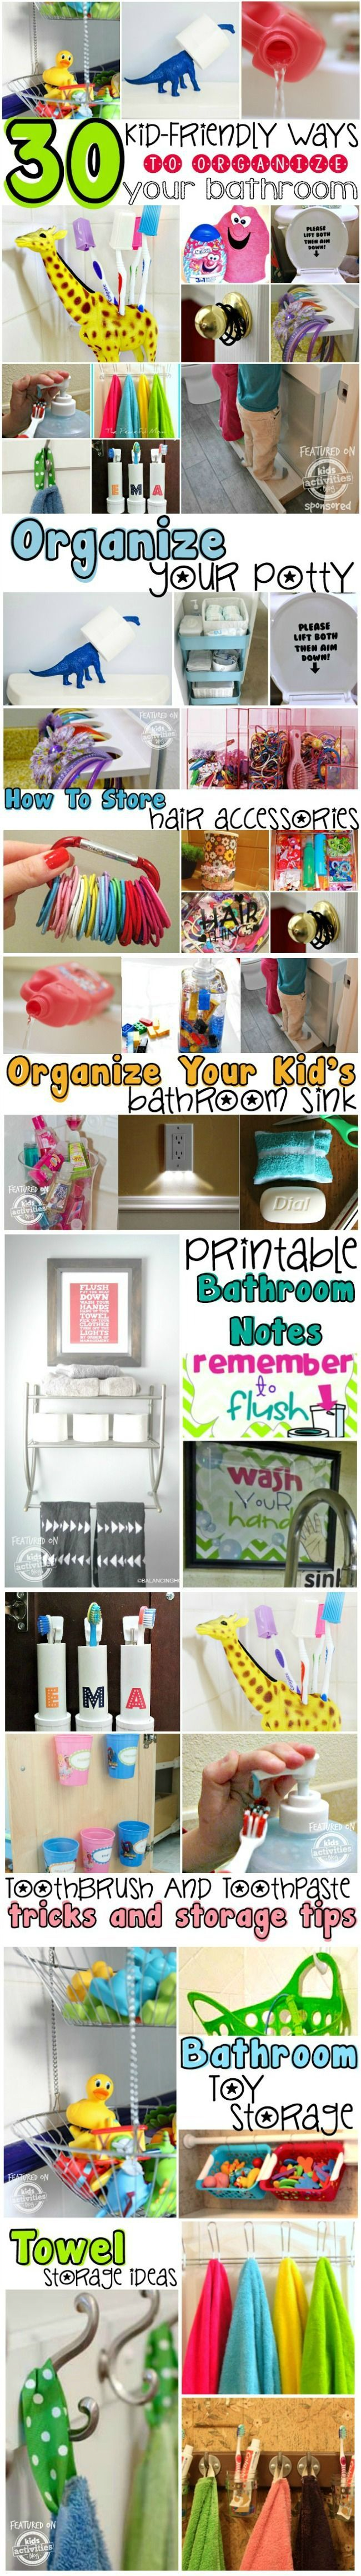 Awesome kids bathrooms - 17 Best Ideas About Kids Bathroom Organization On Pinterest Organizing Kids Toys Kids Bathroom Storage And Bath Toy Storage